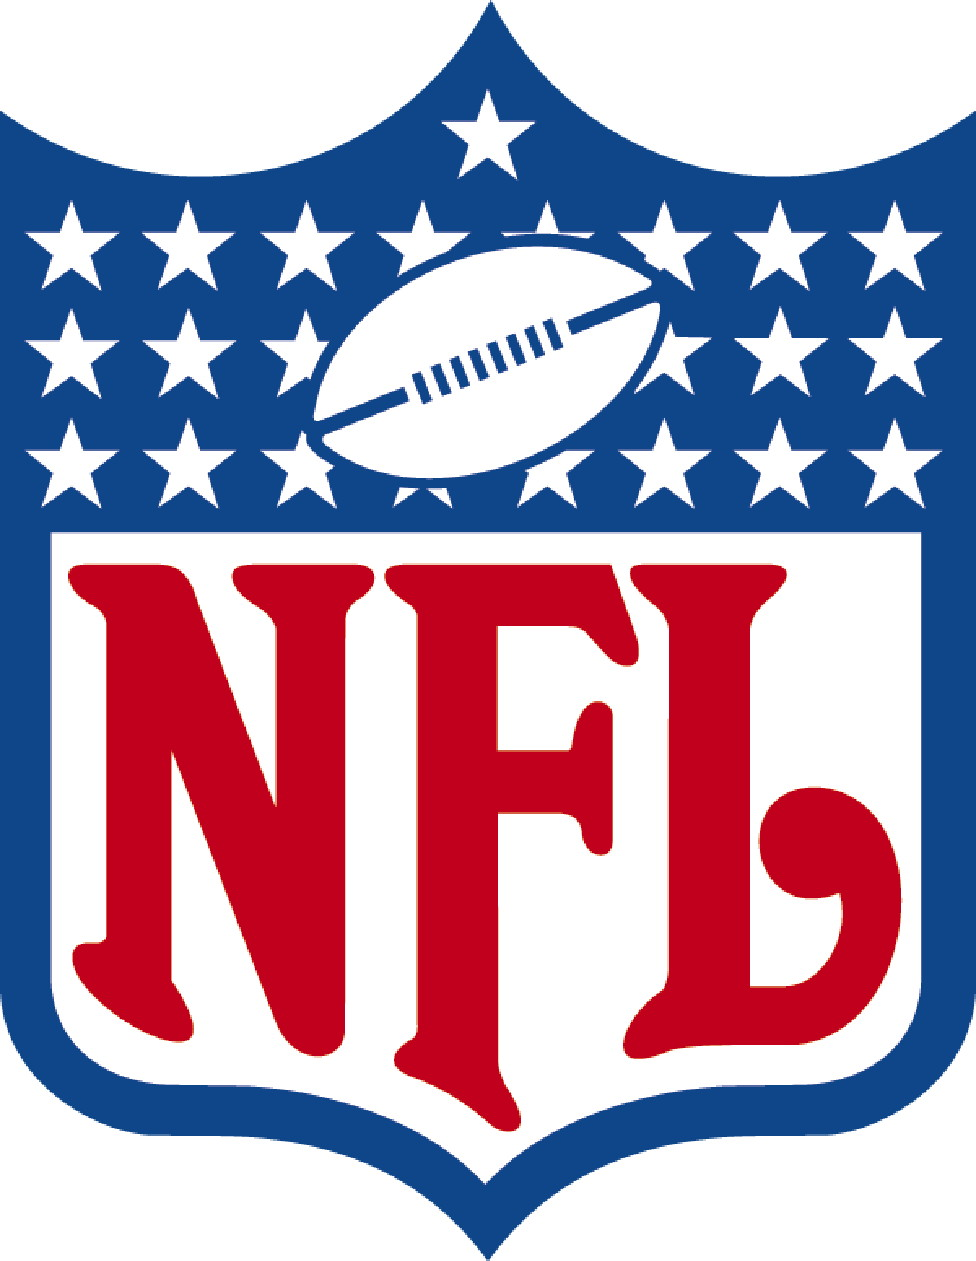 National Football League (NFL), steroids and human growth hormone (hGH)